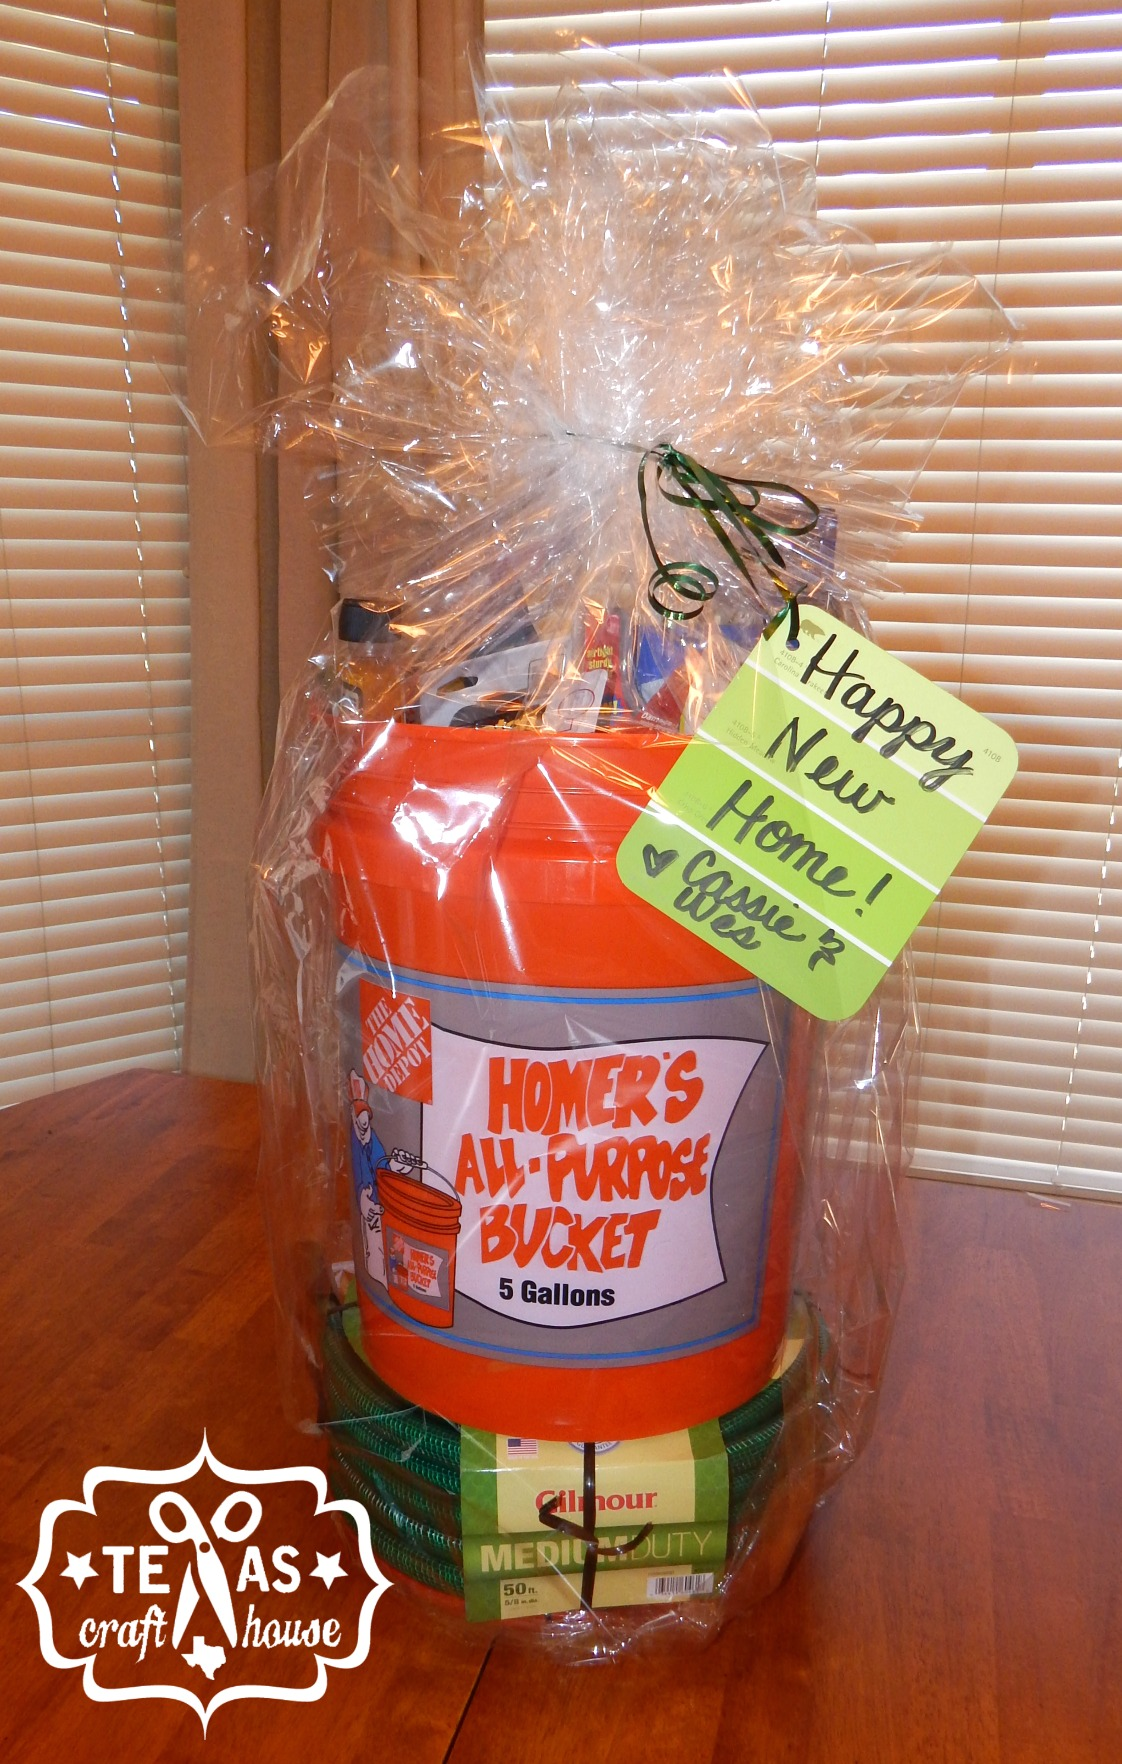 Housewarming Gift For Sister House Warming Bucket Gift Texas Craft House